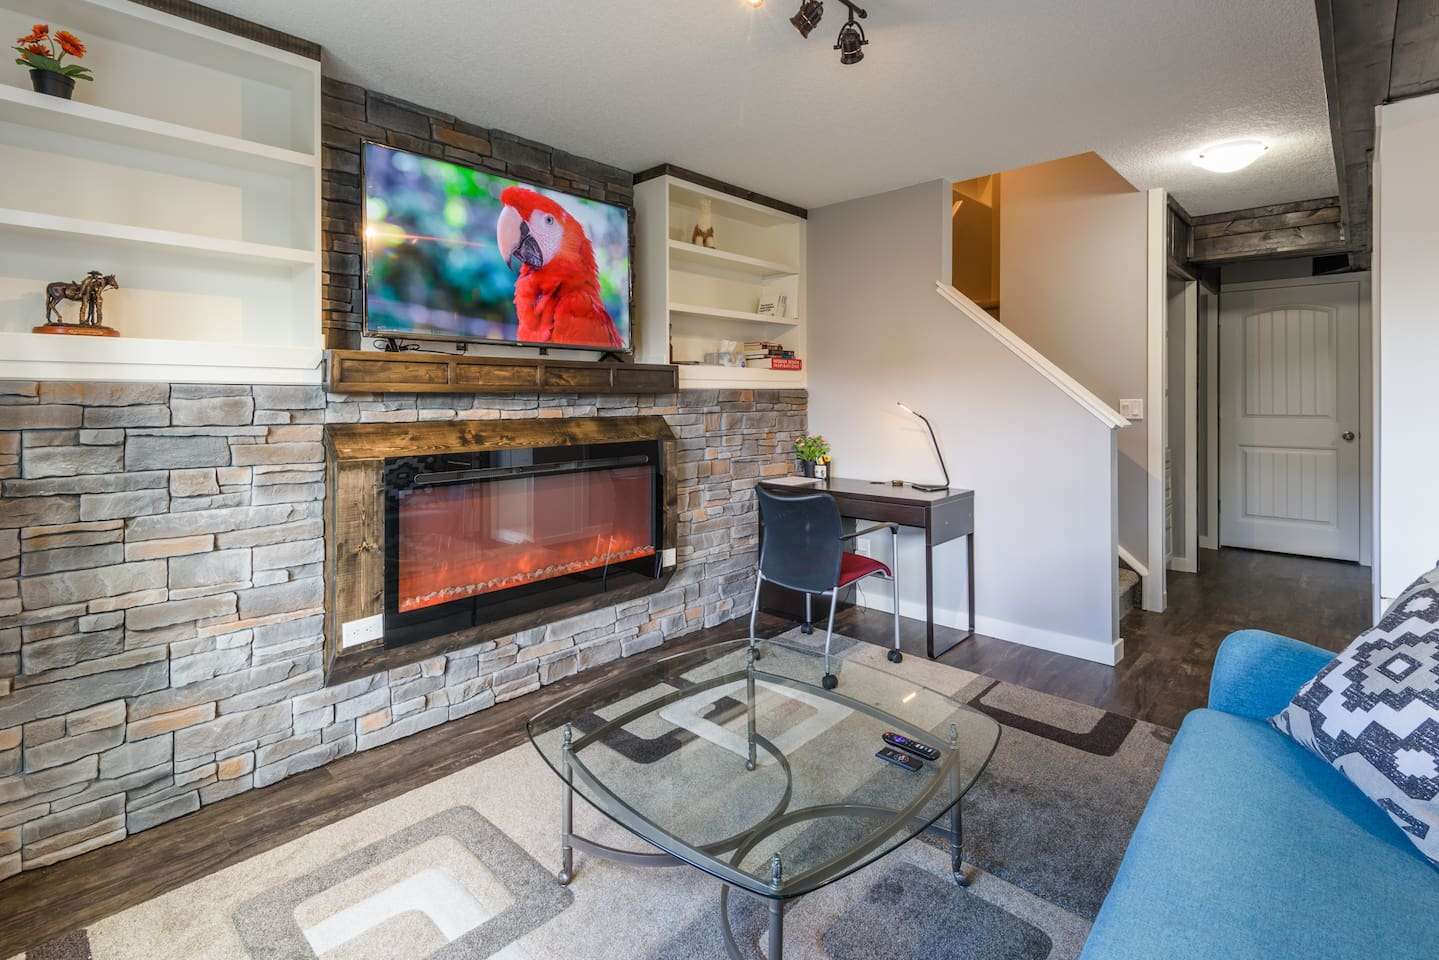 TV, Fire place  and Calgary local  magazines  and work place